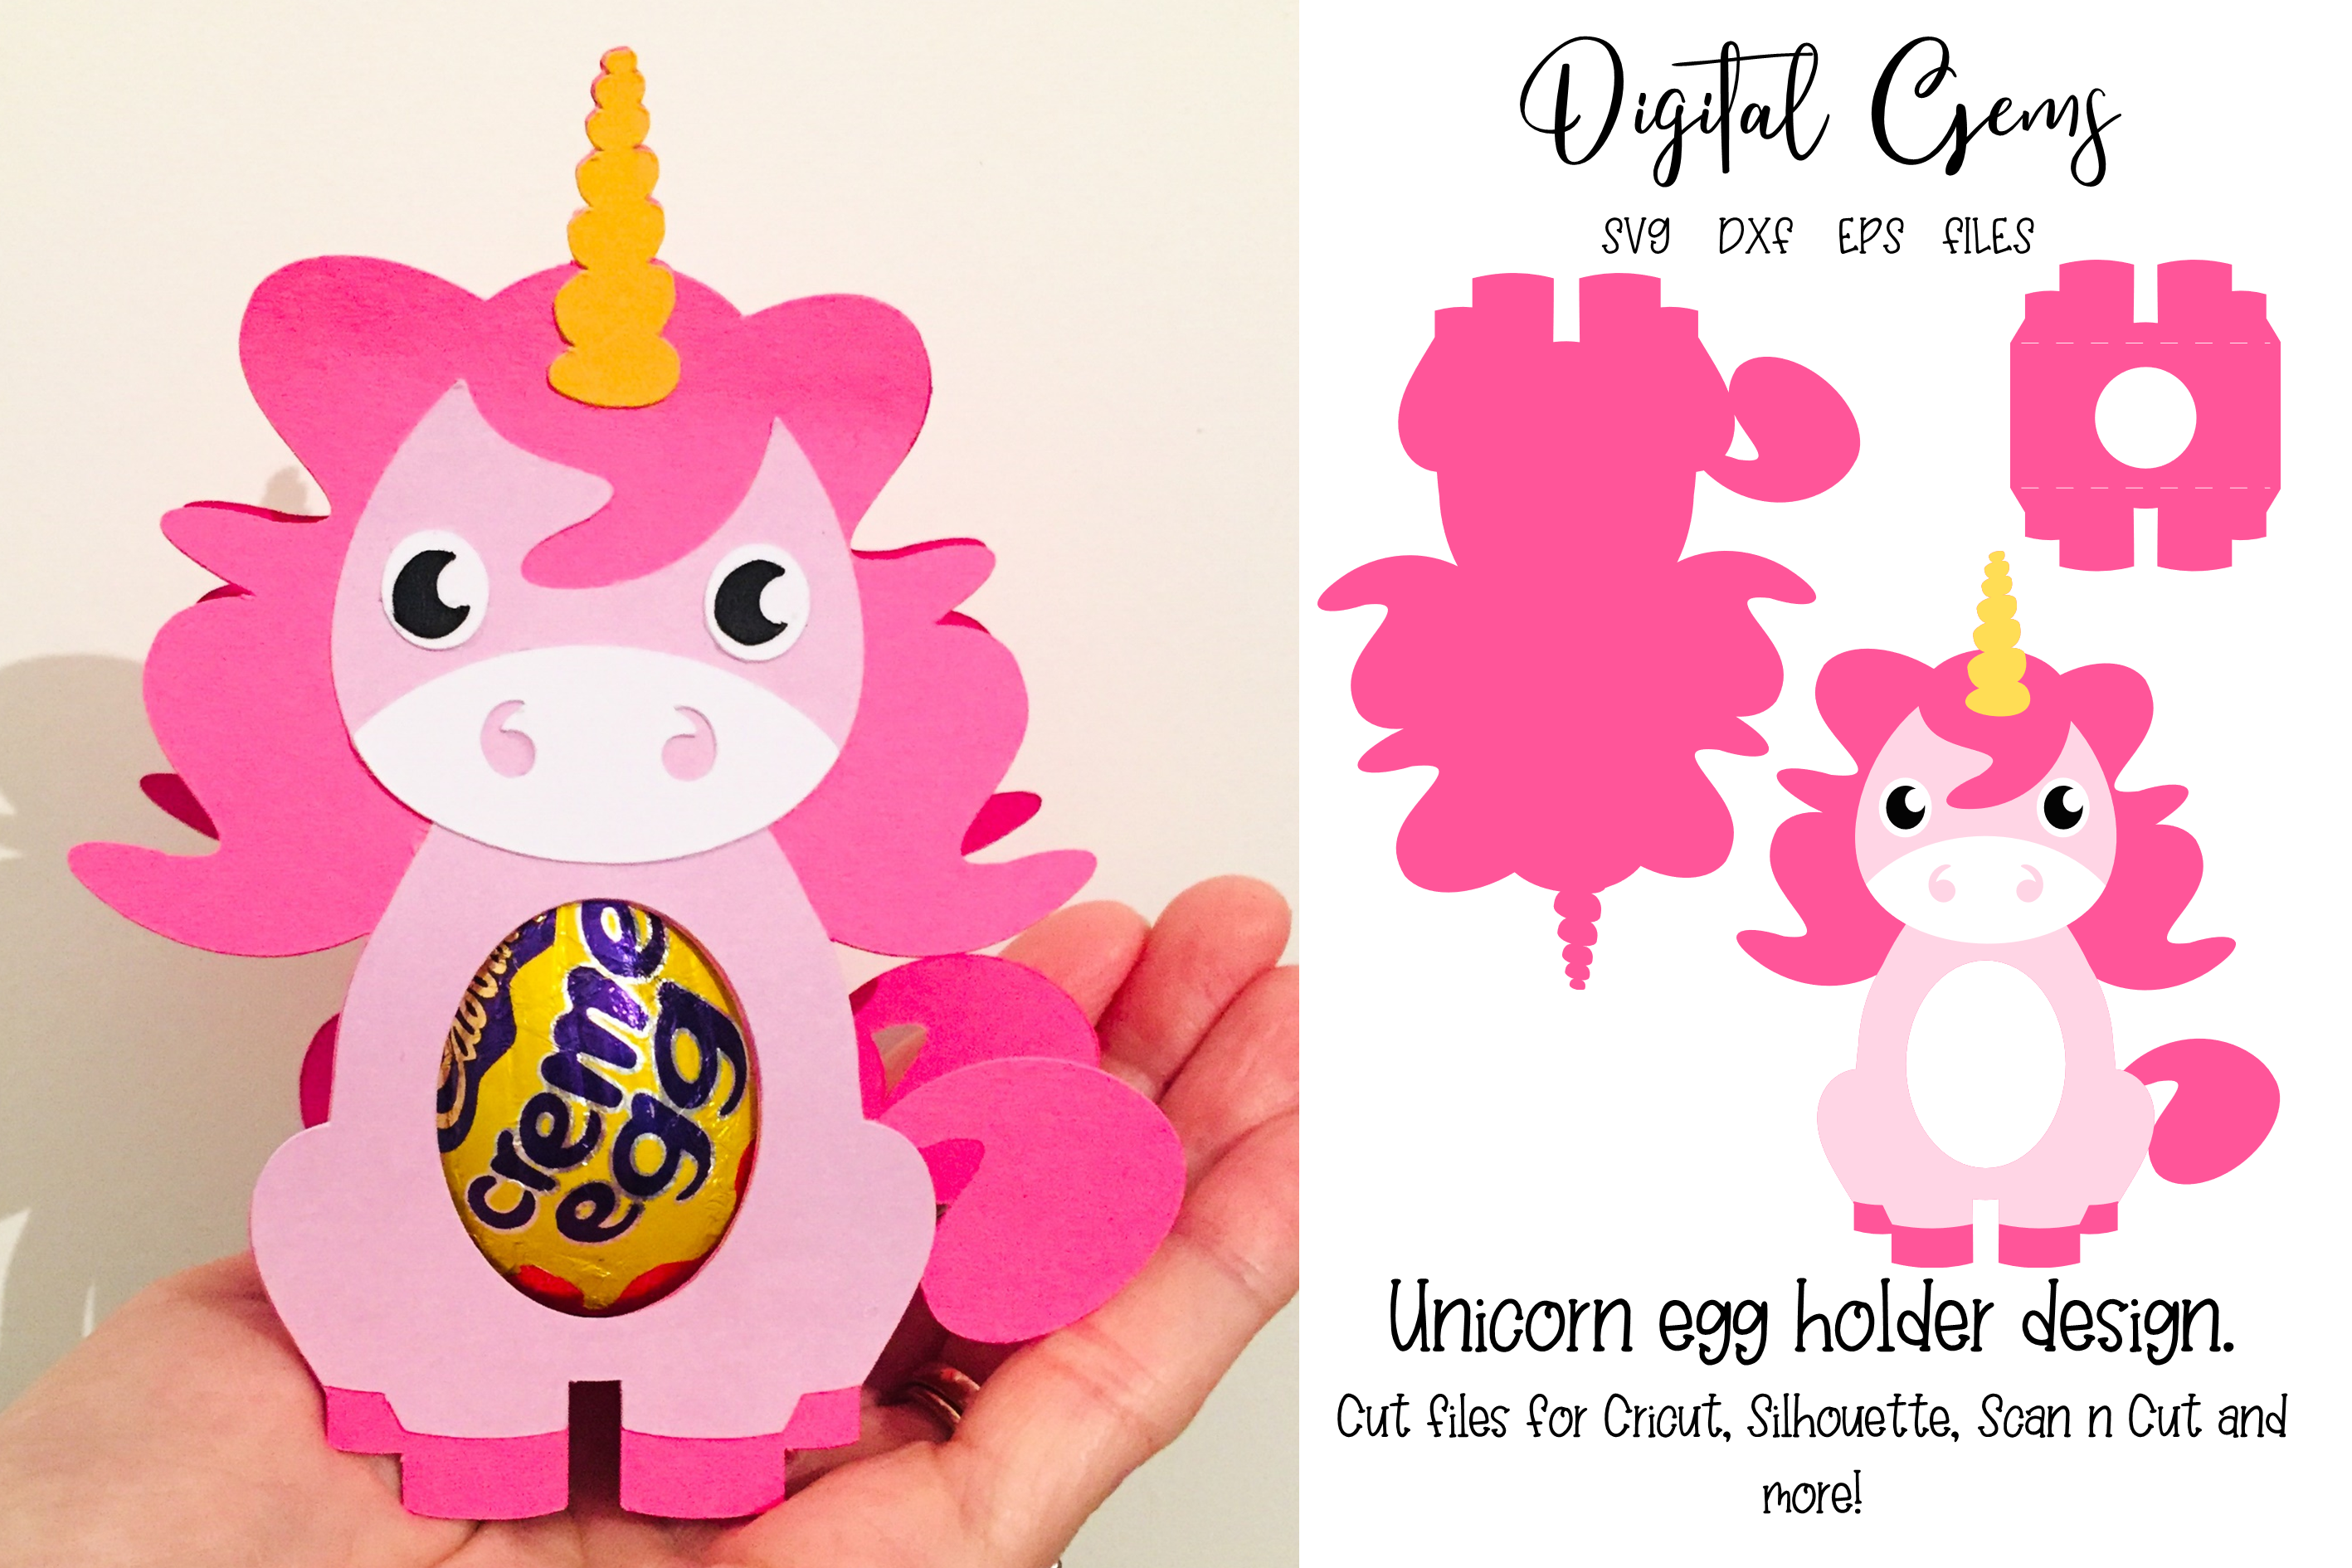 Download Free Unicorn Egg Holder Design Graphic By Digital Gems Creative Fabrica for Cricut Explore, Silhouette and other cutting machines.